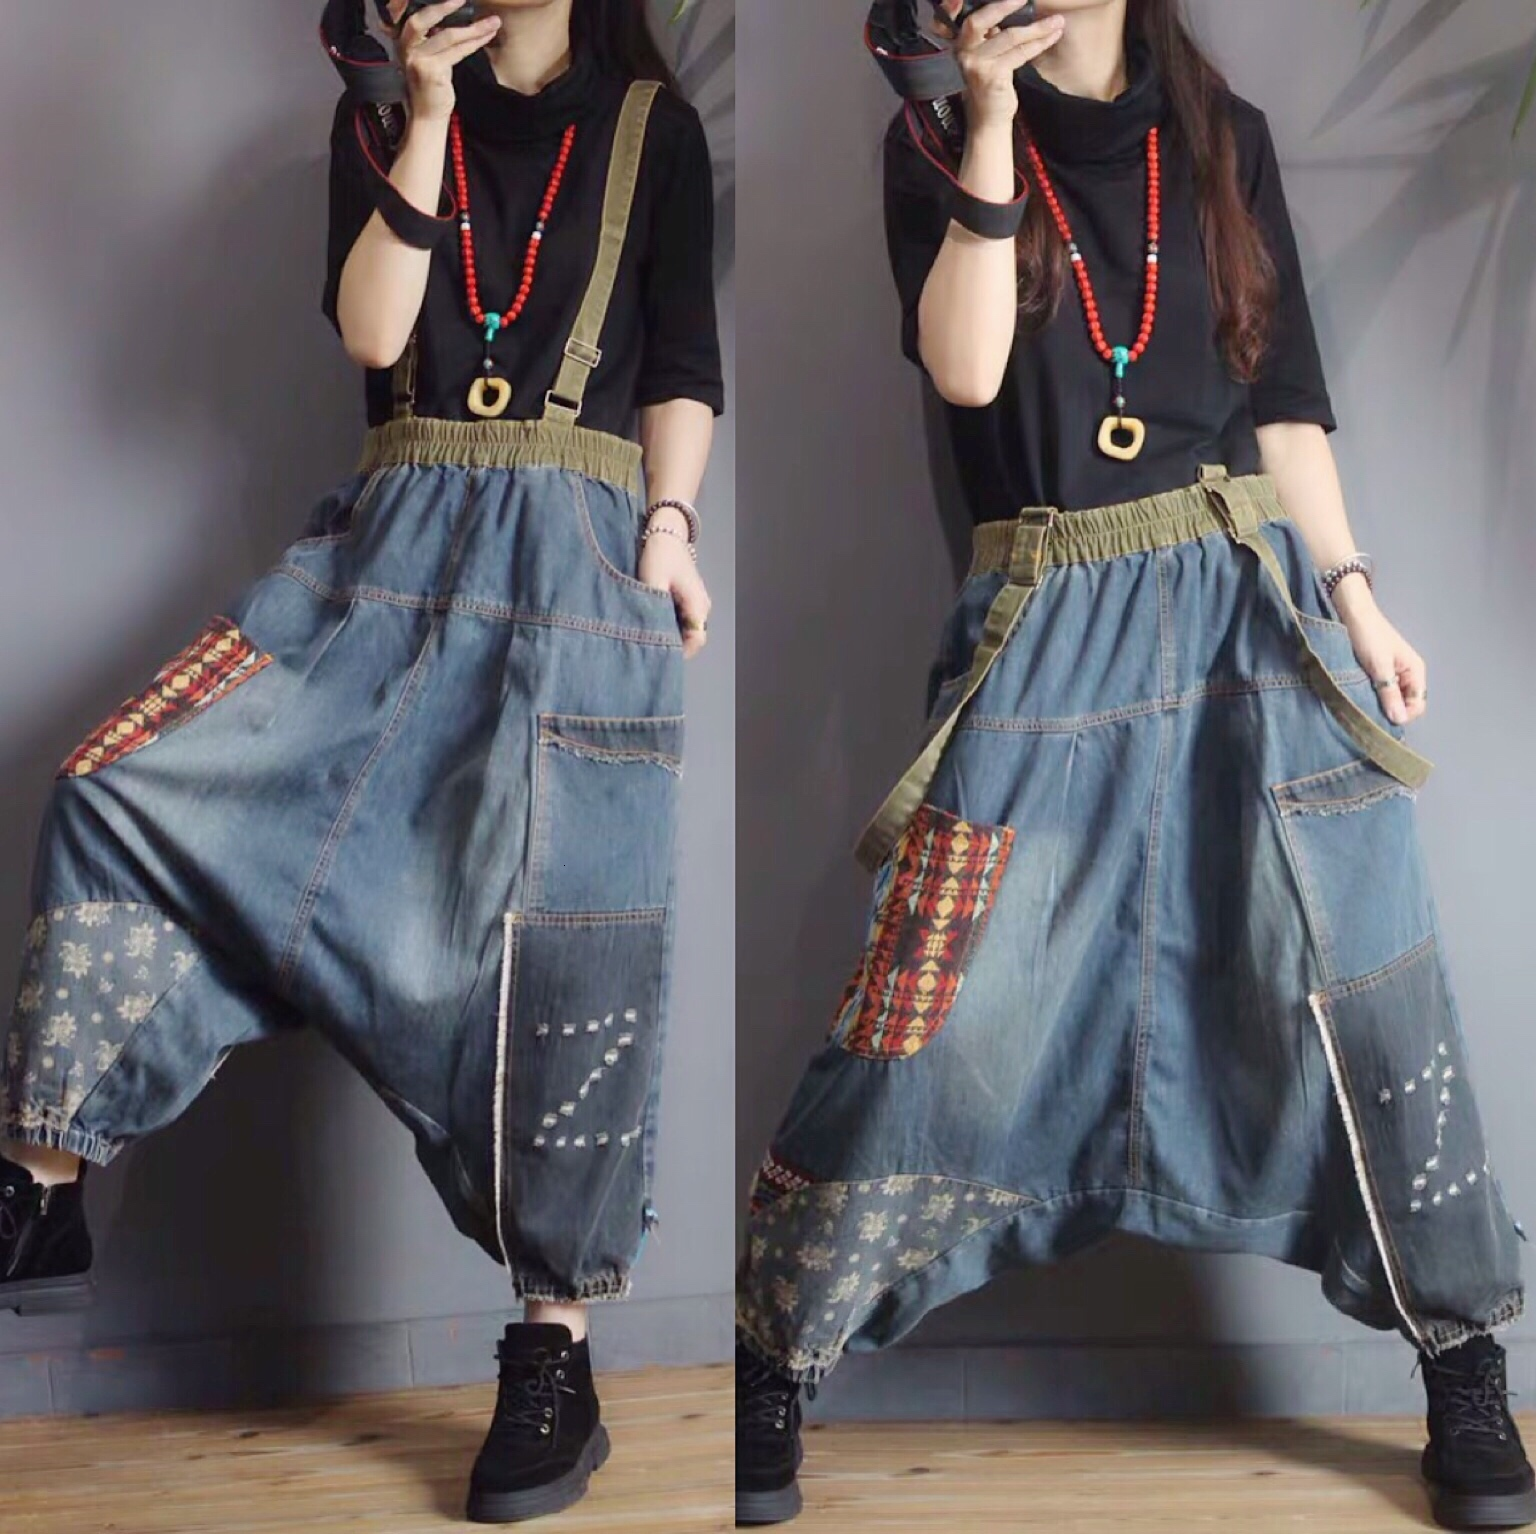 Women Baggy Low Crotch Denim Pants Patchwork Wide Leg Suspenders Jeans Hip Hop Cowboy Harem Trousers Boyfriend Bloomers Joggers